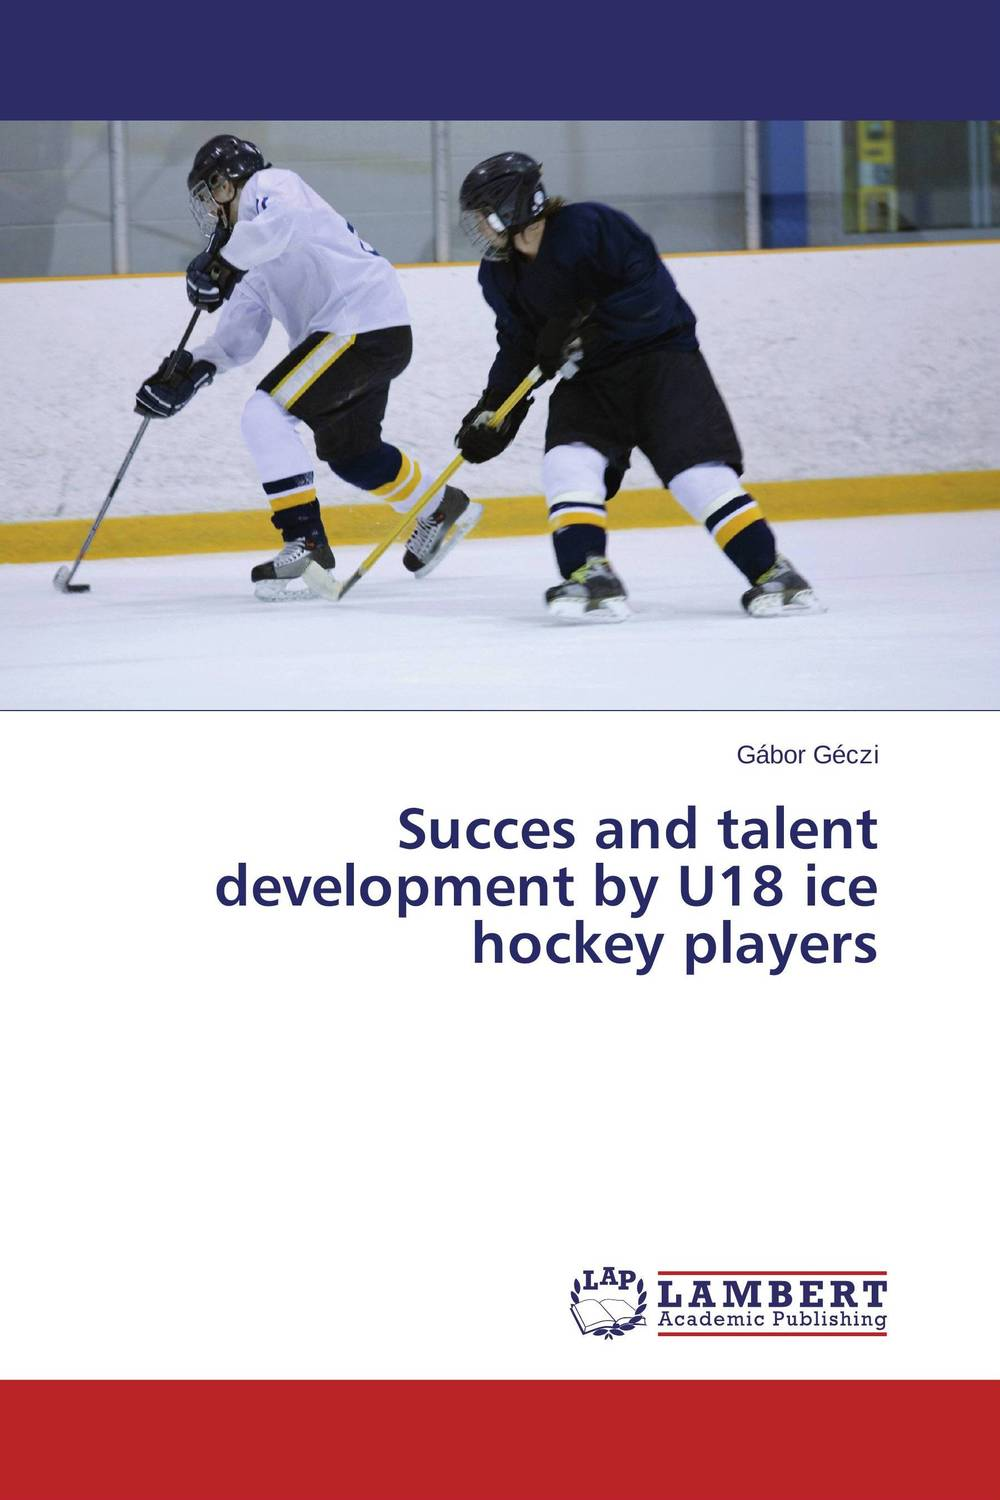 Succes and talent development by U18 ice hockey players